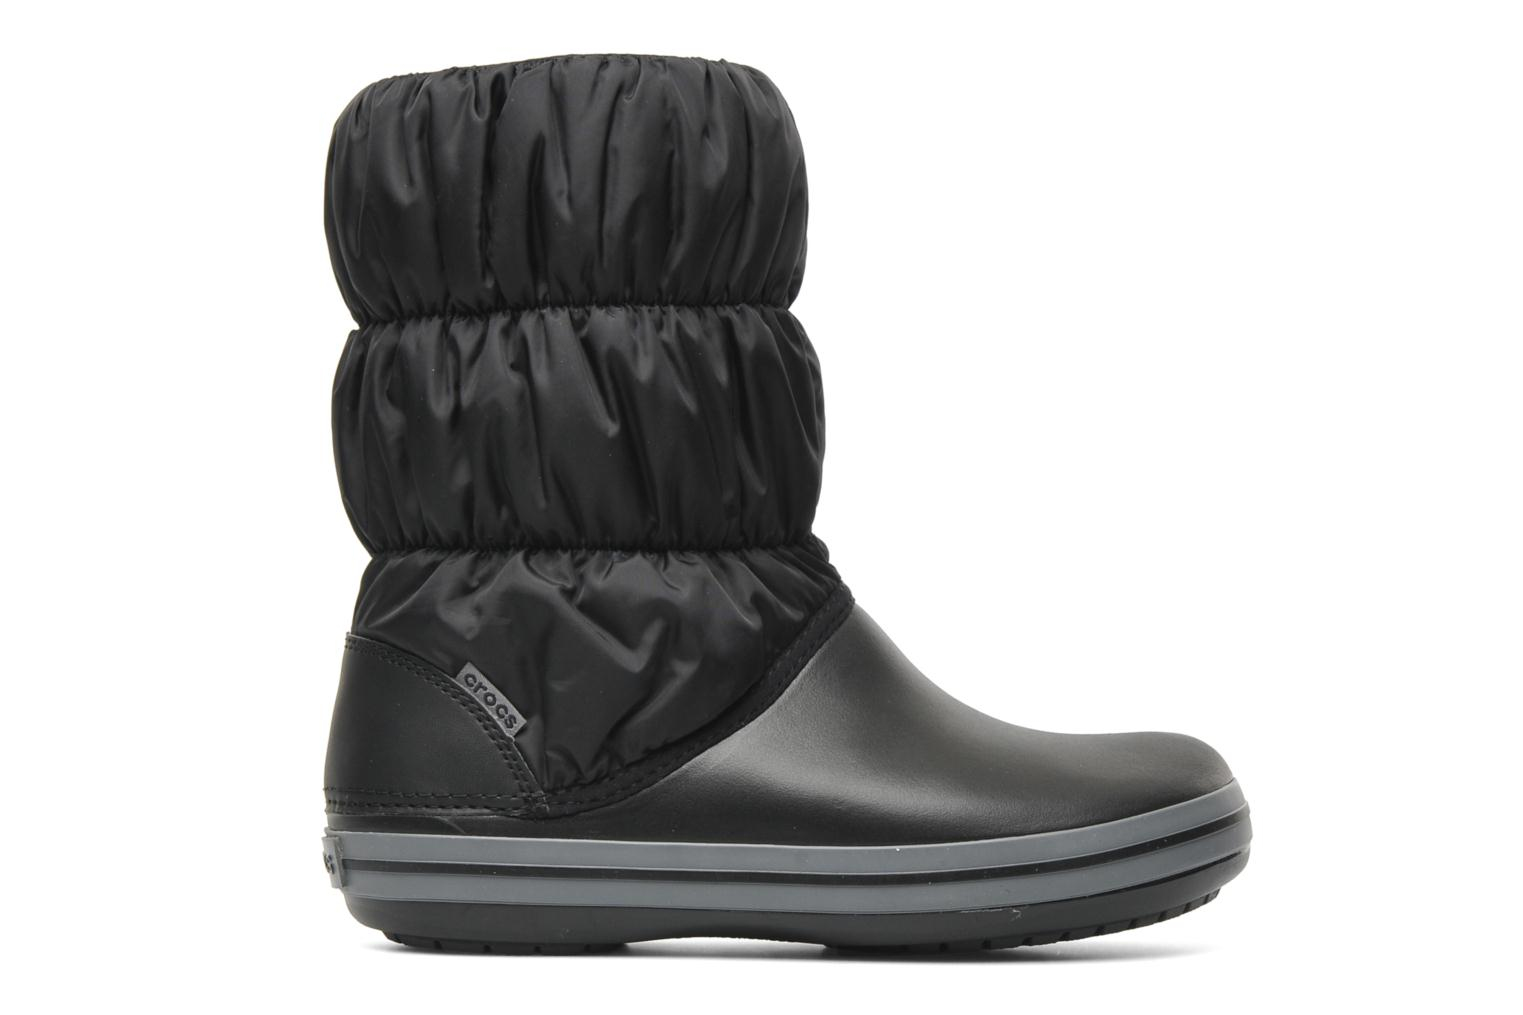 Winter Puff Boot Black/charcoal